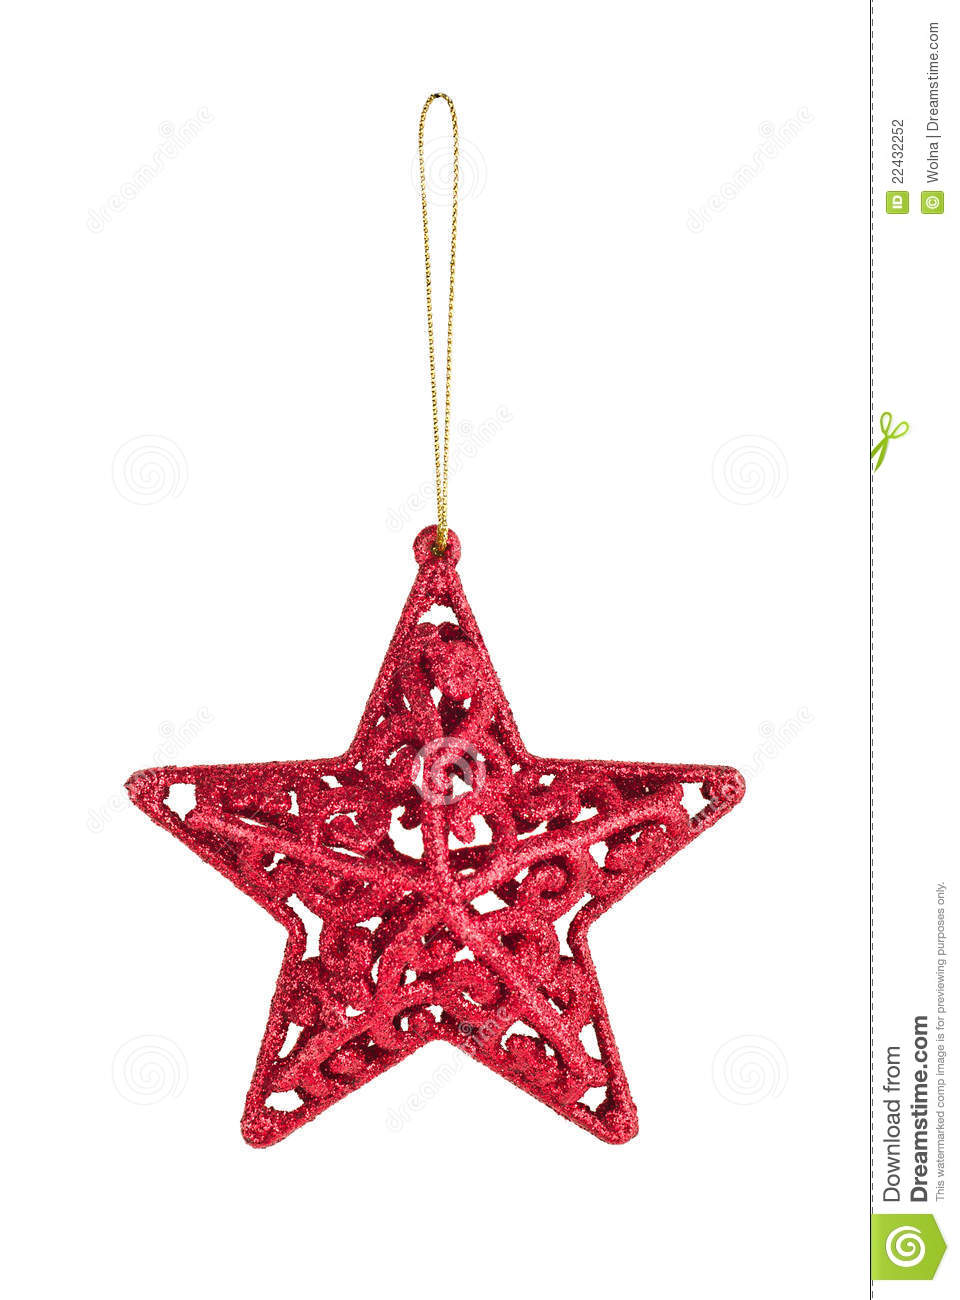 Hanging Christmas red star bauble on gold thread isolated on white ...